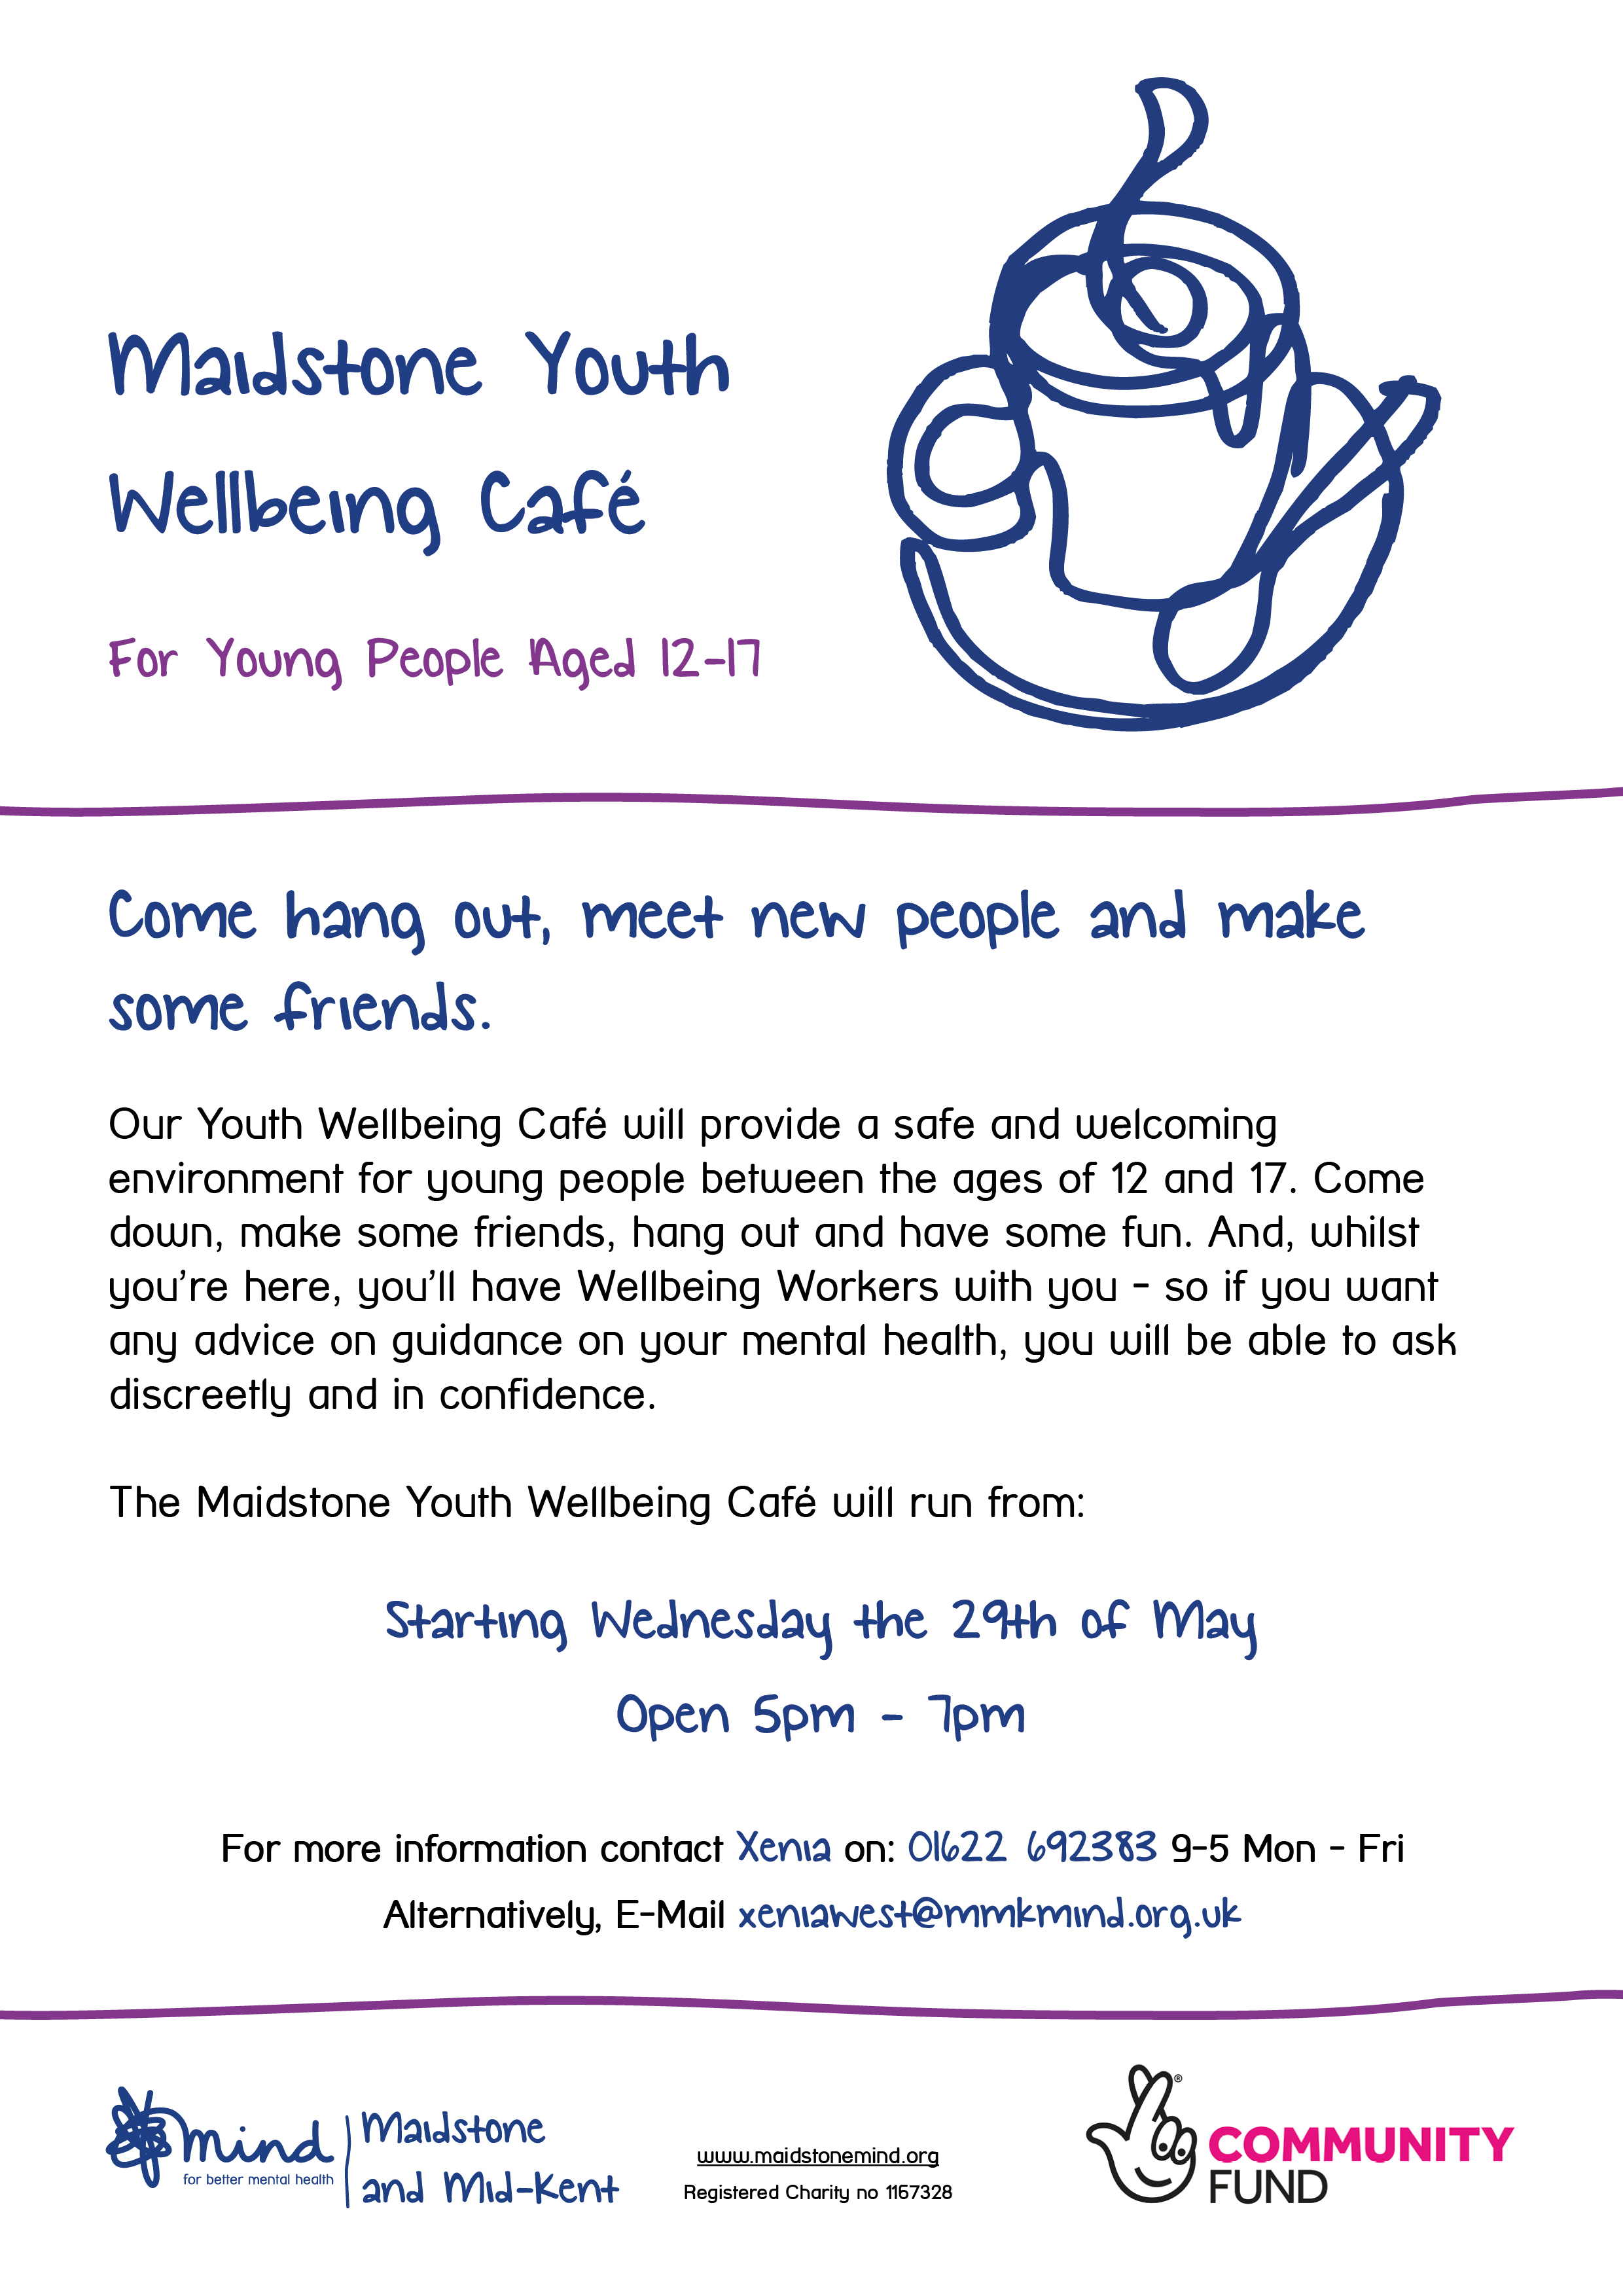 Youth Wellbeing Cafe In Maidstone - Maidstone Youth Wellbeing Café. For Young People Aged 12-17. Come hang out, meet new people and make some friends. Our Youth Wellbeing Café will provide a safe and welcoming environment for young people between the ages of 12 and 17. Come down, make some friends, hang out and have some fun. And, whilst you're here, you'll have Wellbeing Workers with you - so if you want any advice on guidance on your mental health, you will be able to ask discreetly and in confidence. The Maidstone Youth Wellbeing Café will run from: Starting Wednesday the 29th of May Open 5pm - 7pm. For more information contact Xenia on: 01622 692383 9-5 Mon - Fri Alternatively, E-Mail xeniawest@mmkmind.org.uk